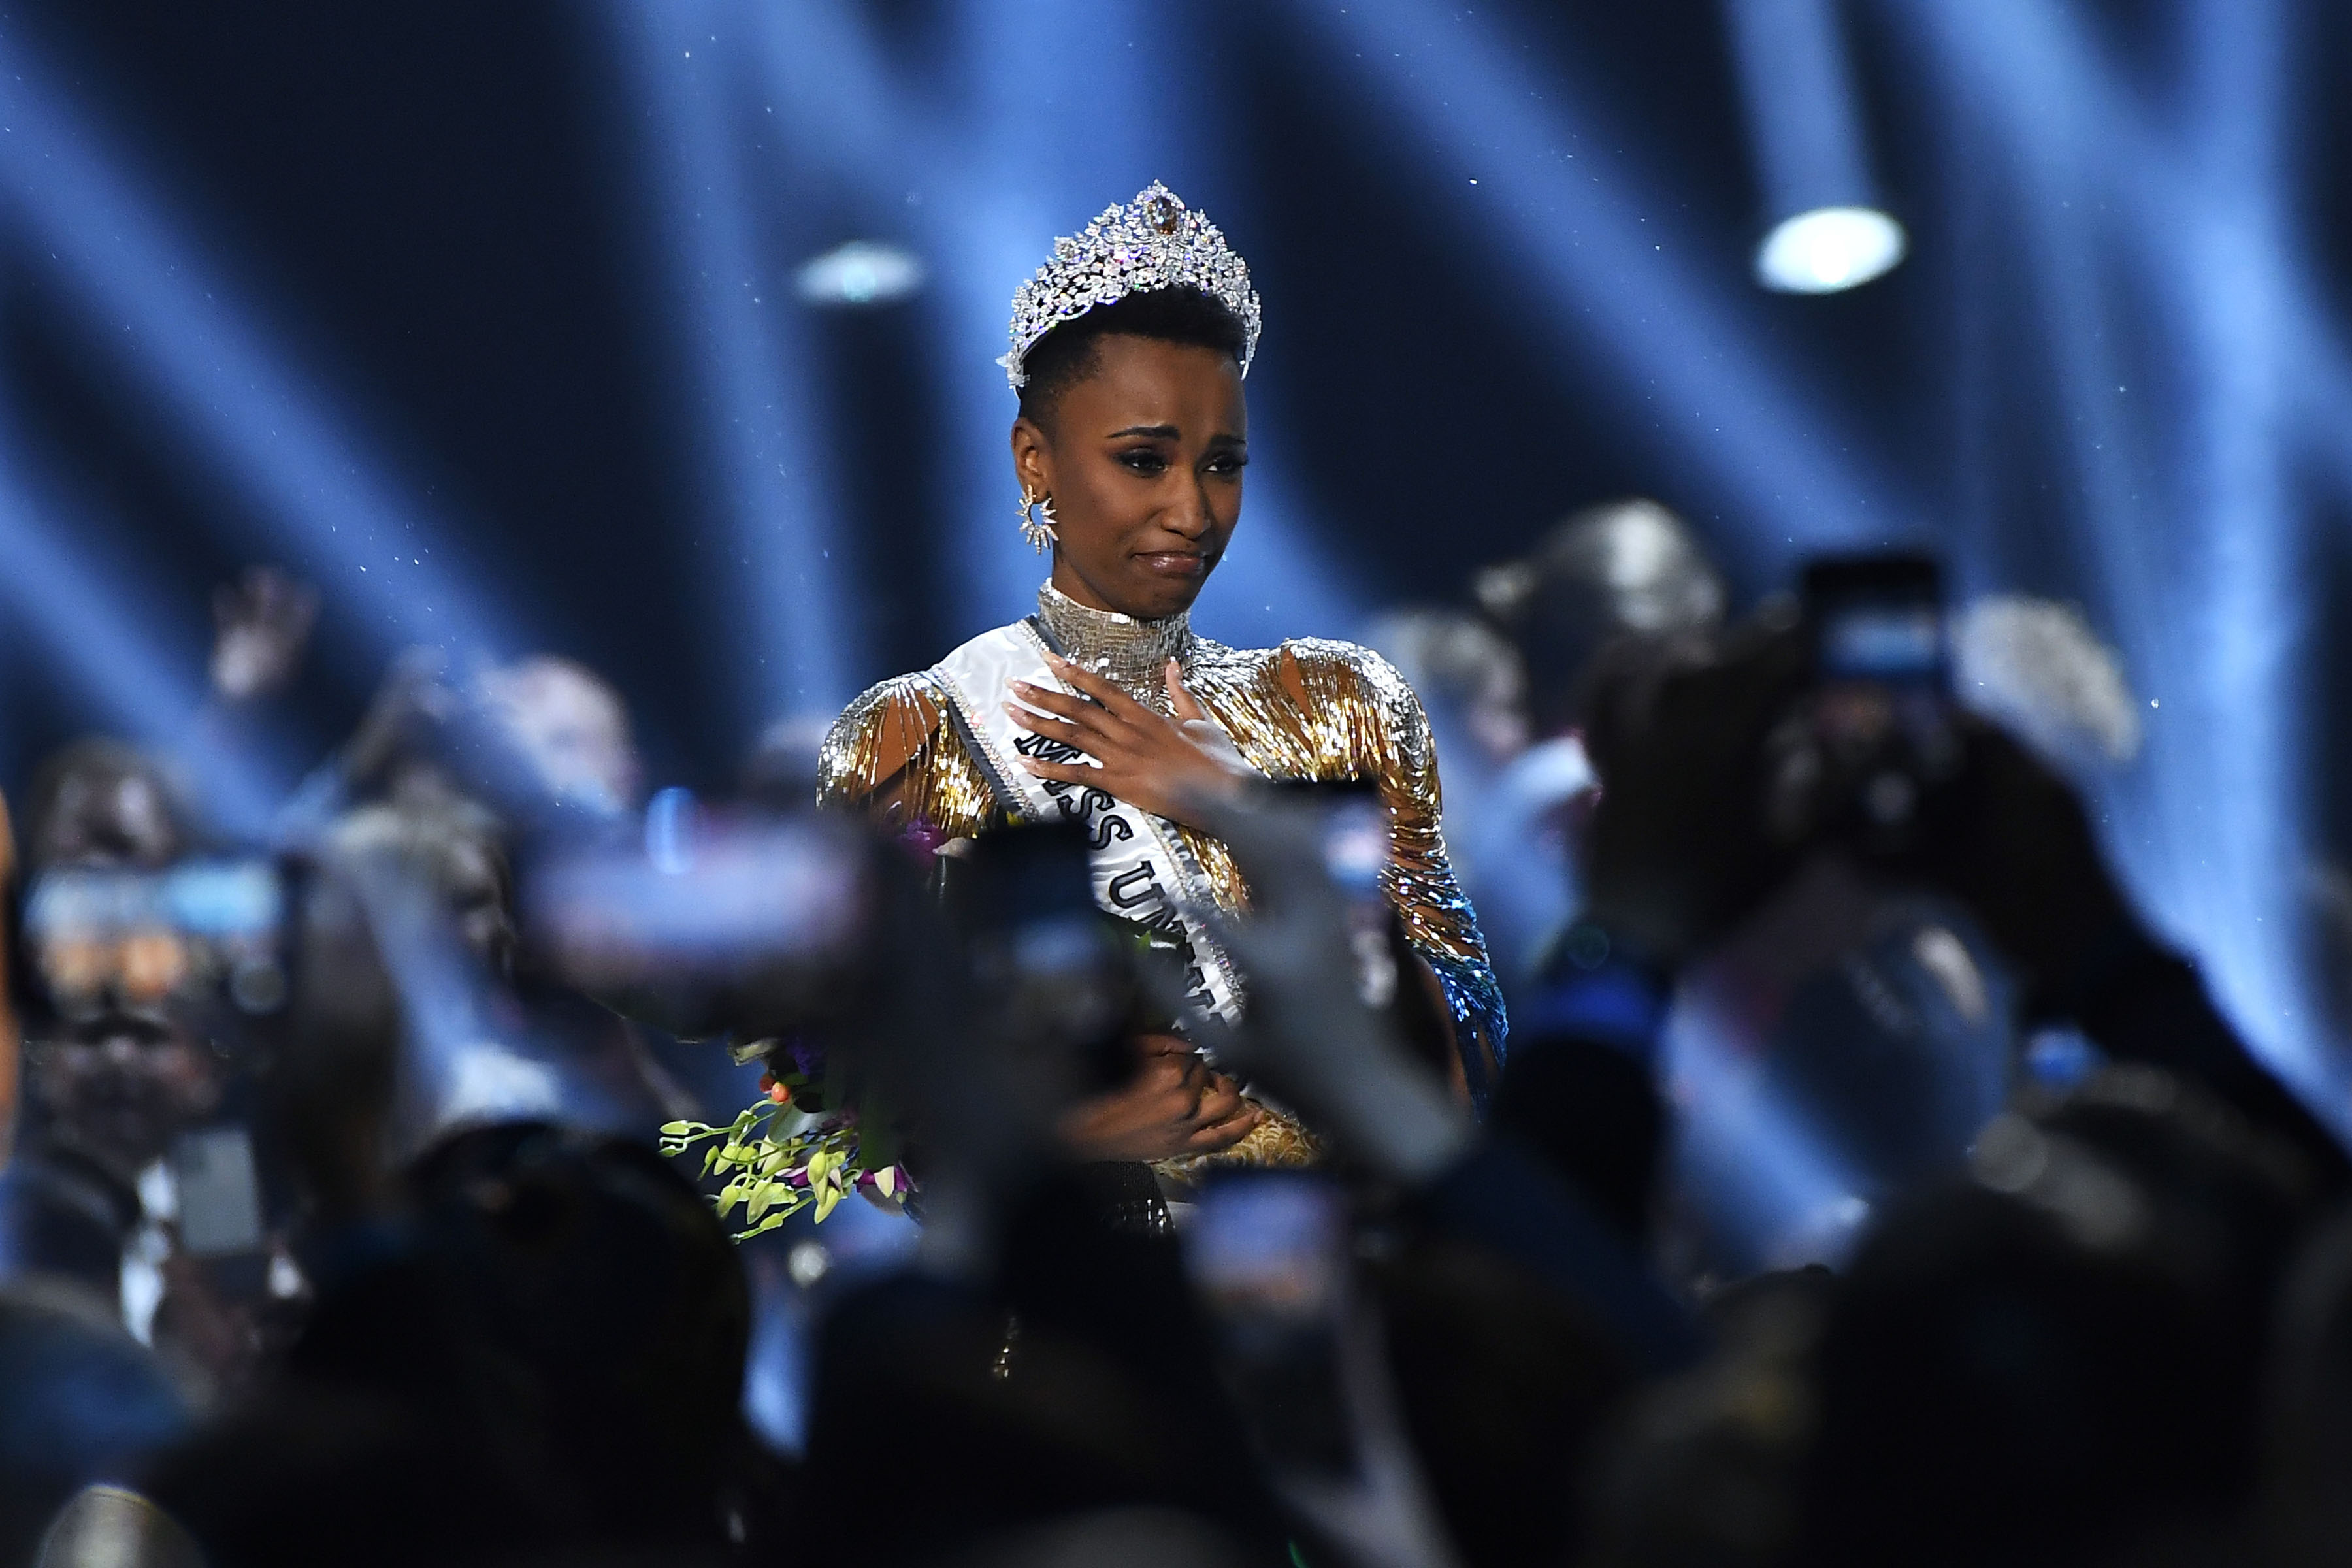 8 December 2019: South Africa's Zozibini Tunzi is crowned Miss Universe at the 2019 pageant in Atlanta, Georgia, in the United States. (Photograph by Paras Griffin/Getty Images)